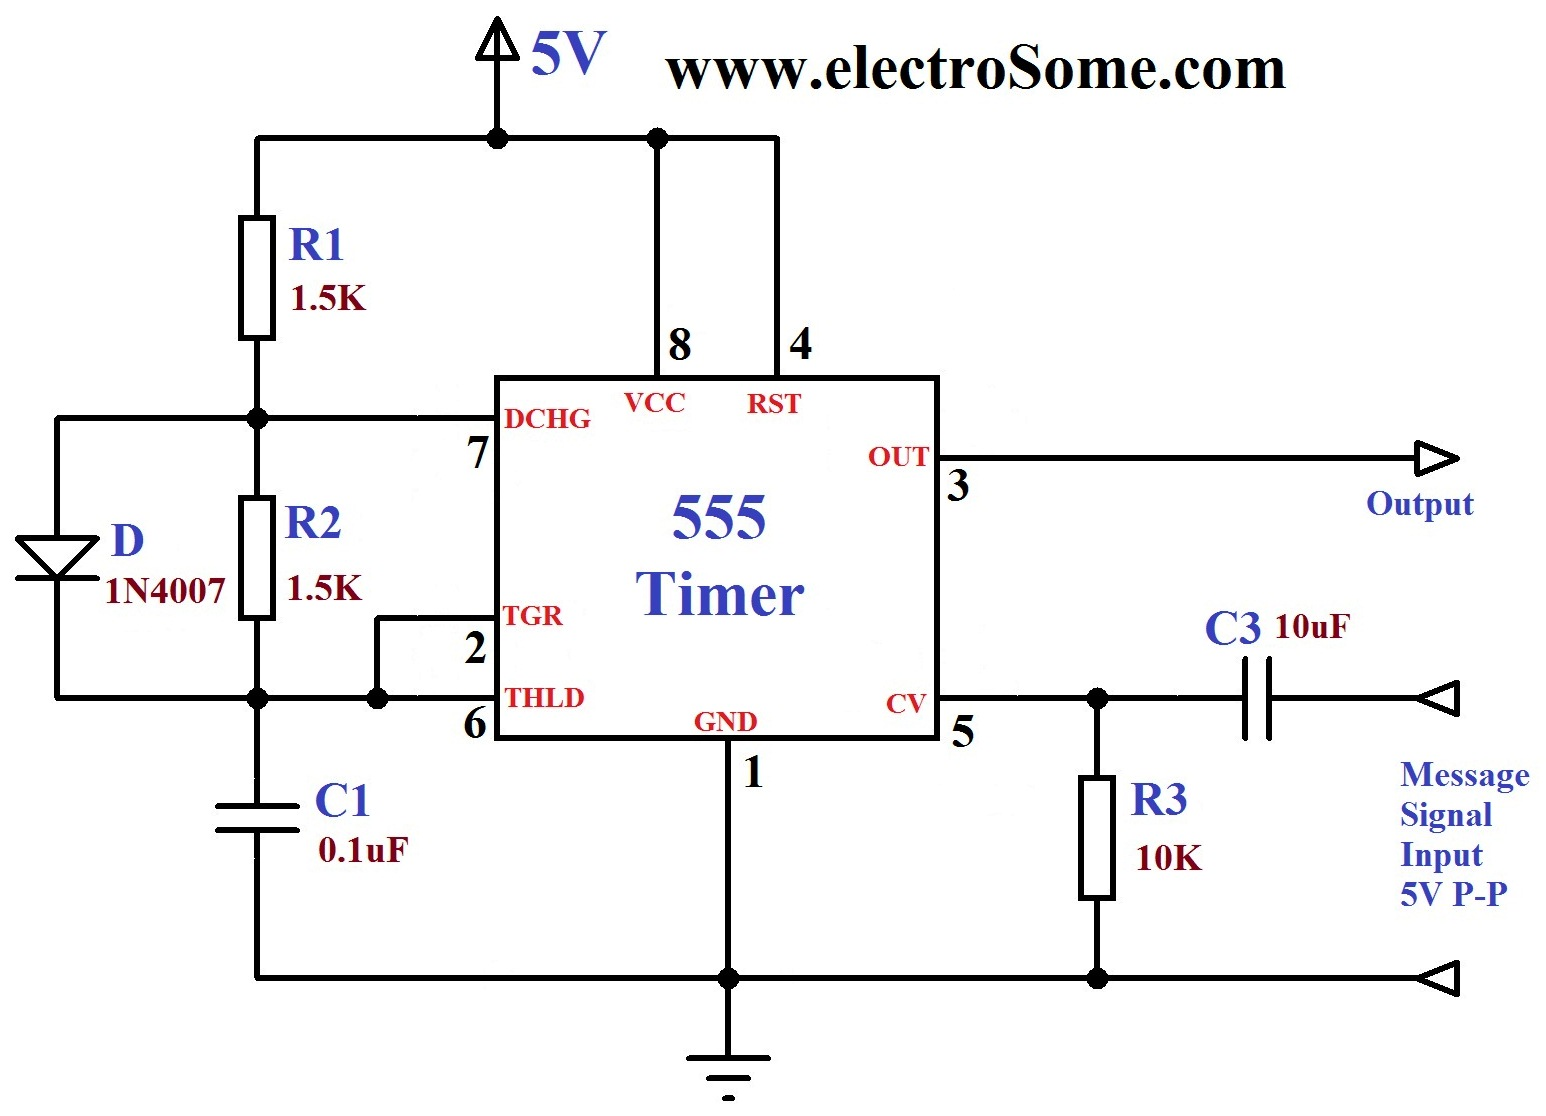 Flyback Driver 2 besides Tg2 moreover Modified Sine Wave Inverter Circuit in addition Fm Generation Using 555 Timer also Tesla Coil Generator Schematic. on ne555 ignition coil driver